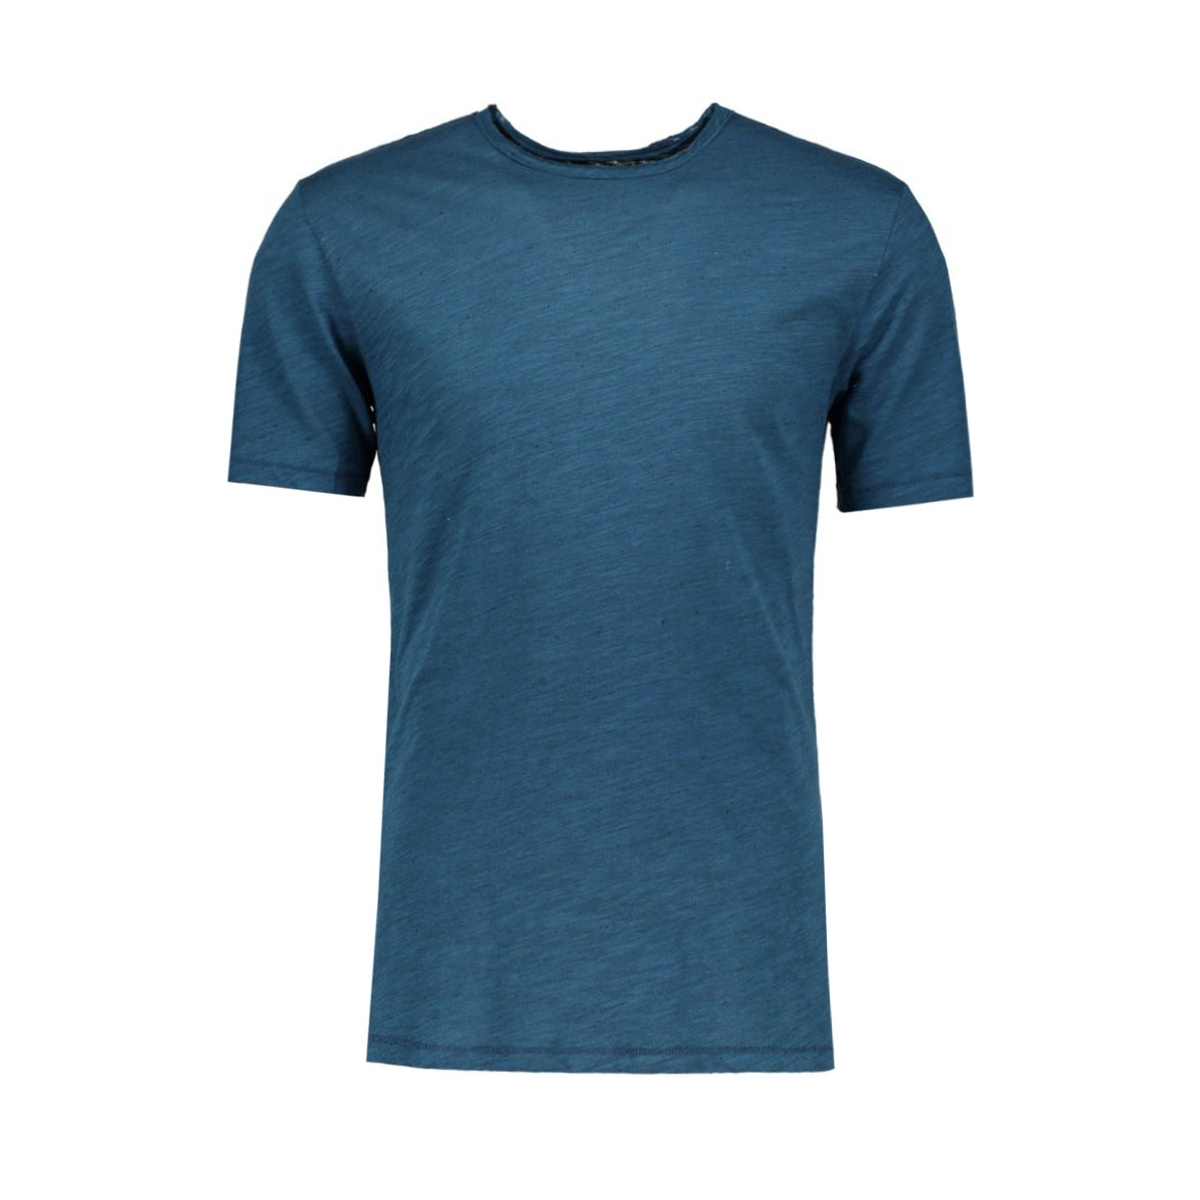 onsalbert new ss tee noos 22005108 only & sons t-shirt deep dive